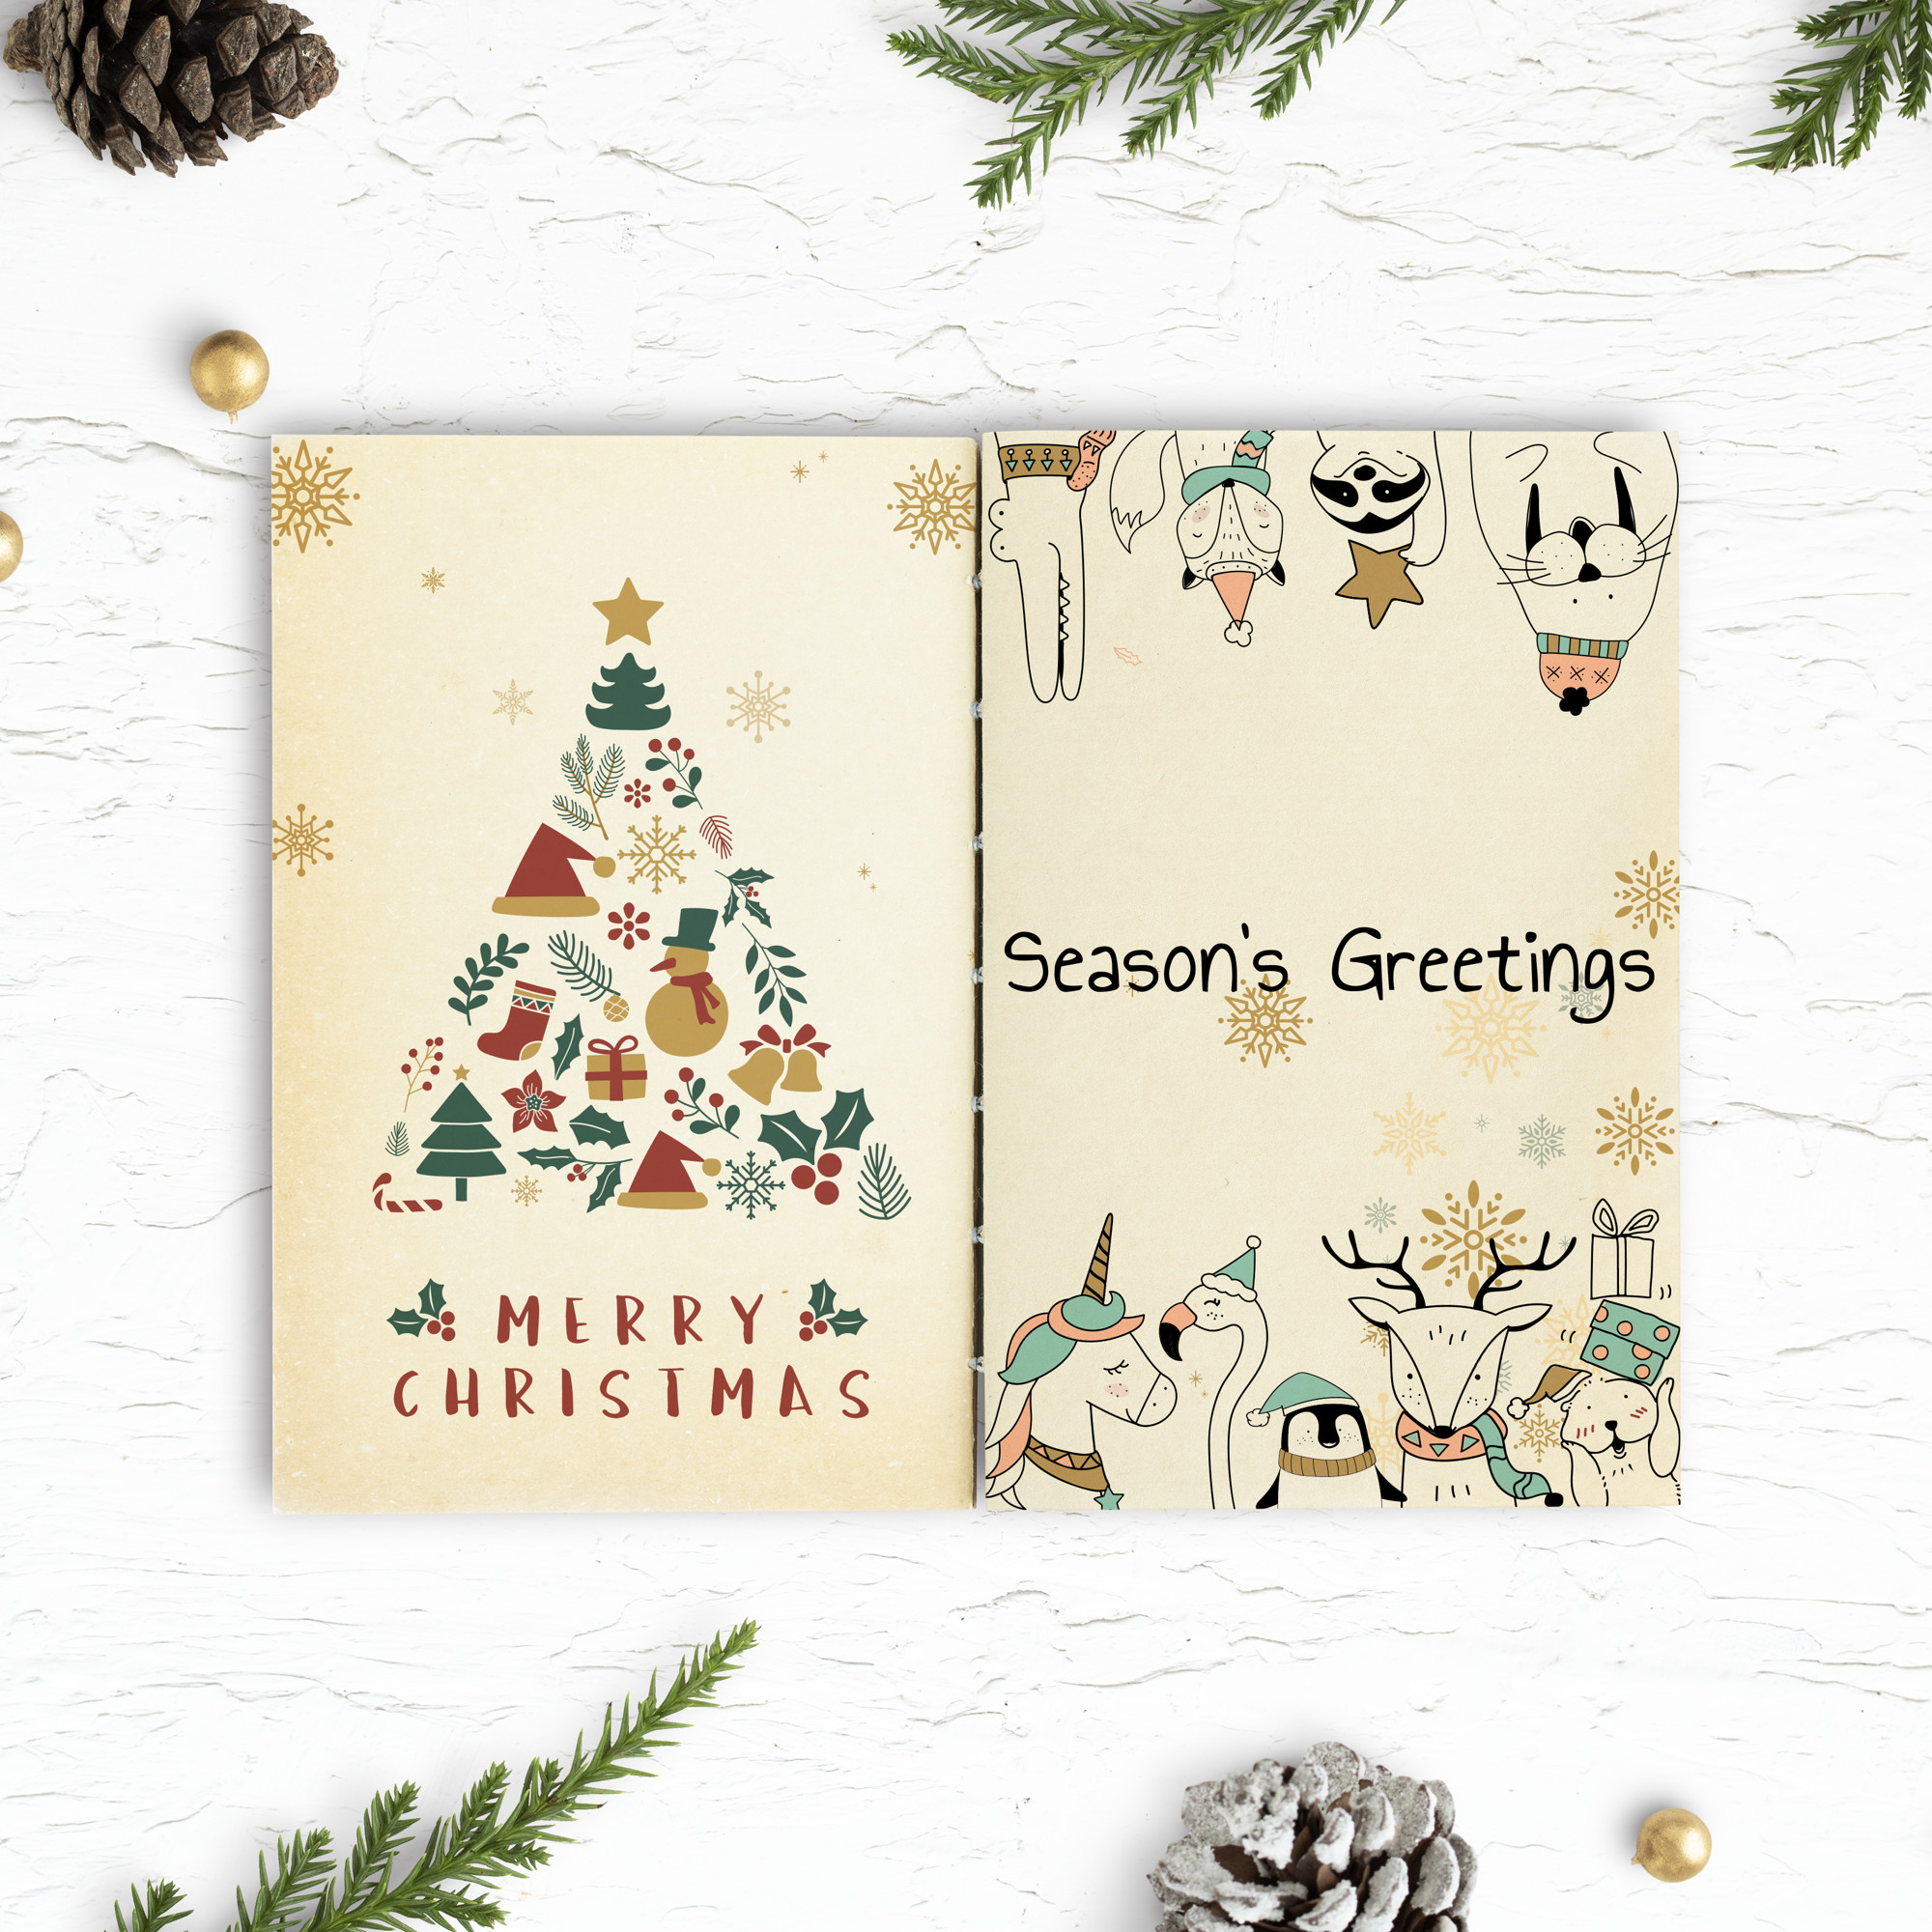 Christmas illustrations in a notebook mockup